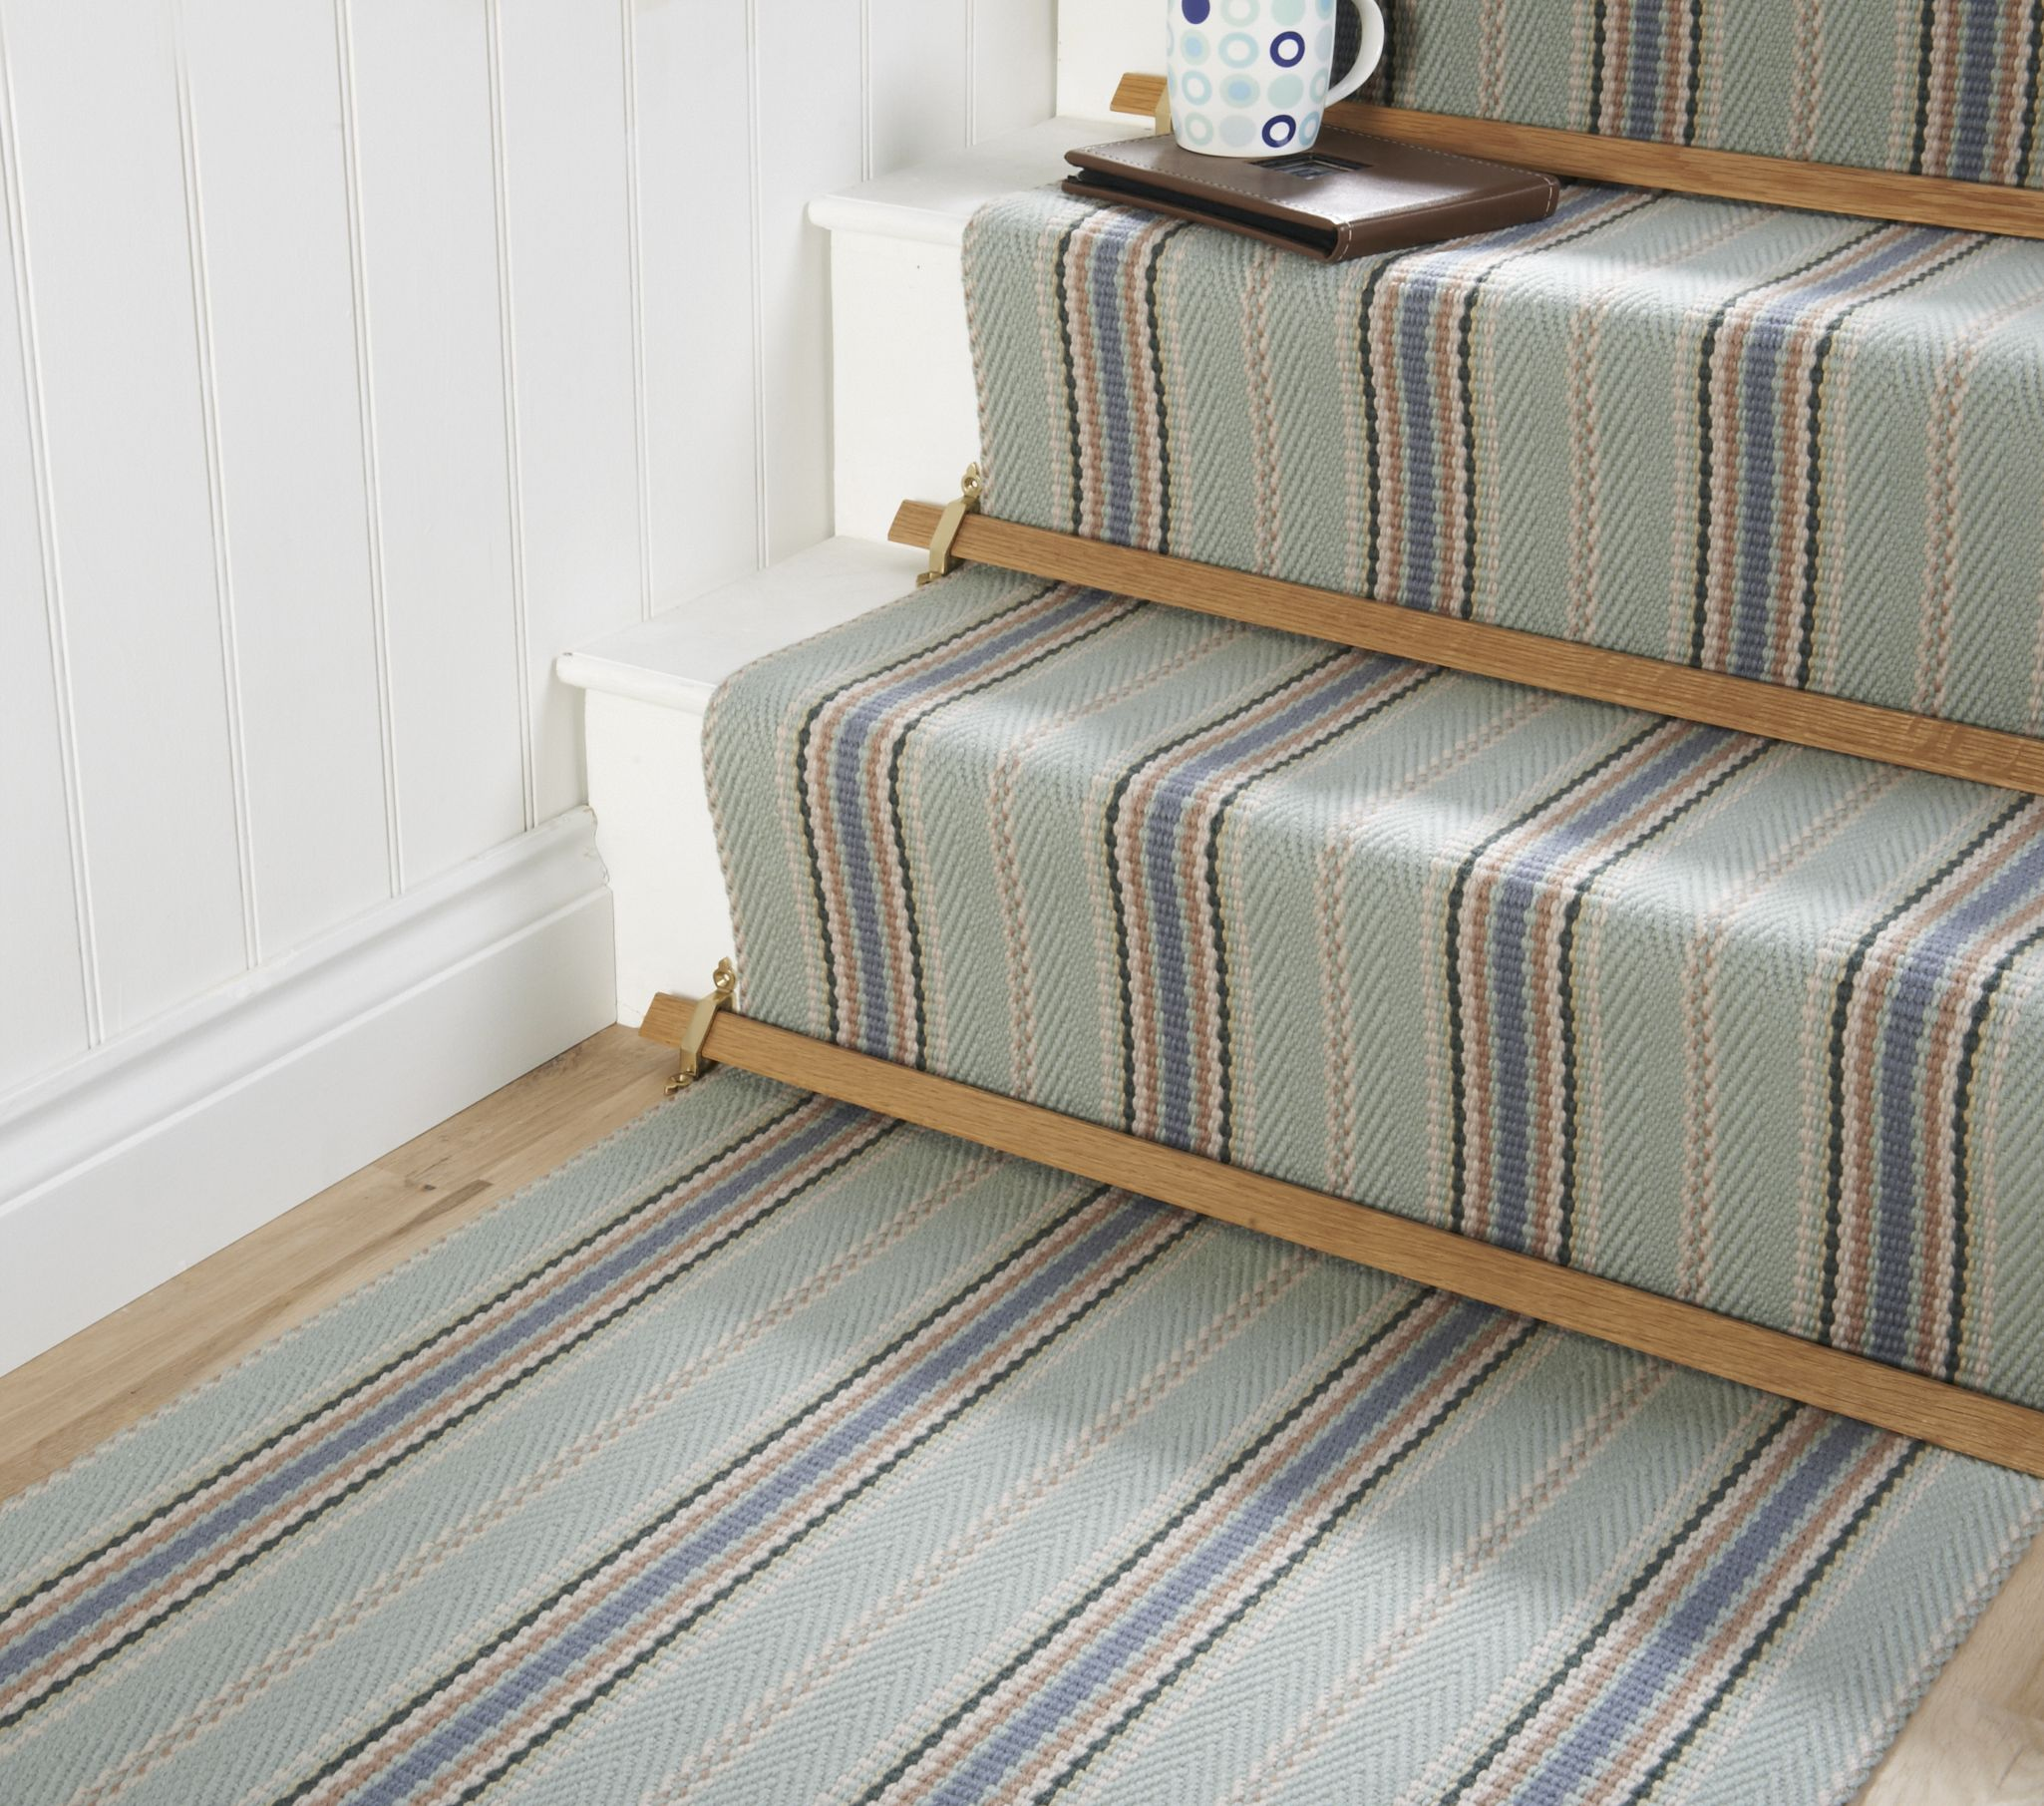 Staircase Options Updating Your Flooring Here Are Some Of Your Options